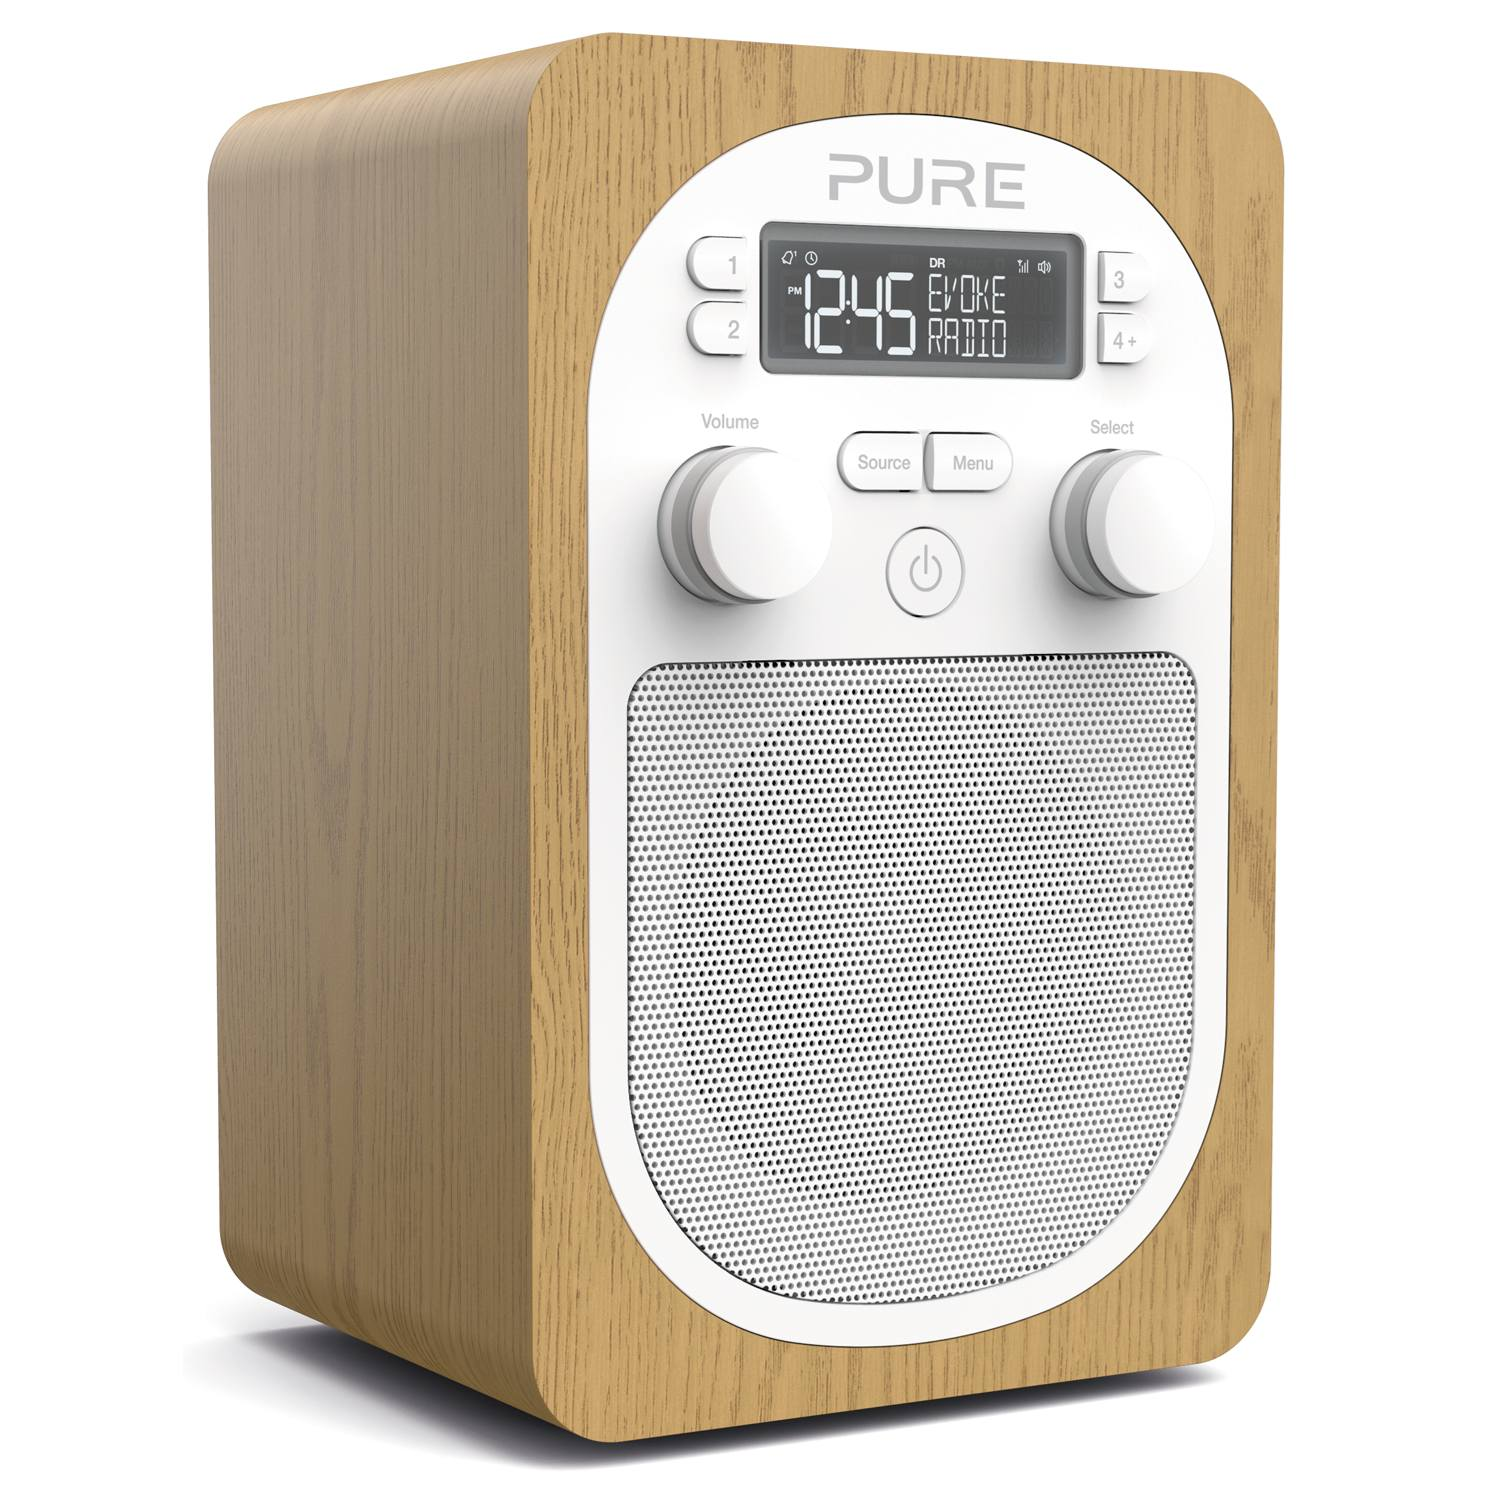 pure evoke h2 dab fm digital portable alarm clock radio oak ebay. Black Bedroom Furniture Sets. Home Design Ideas